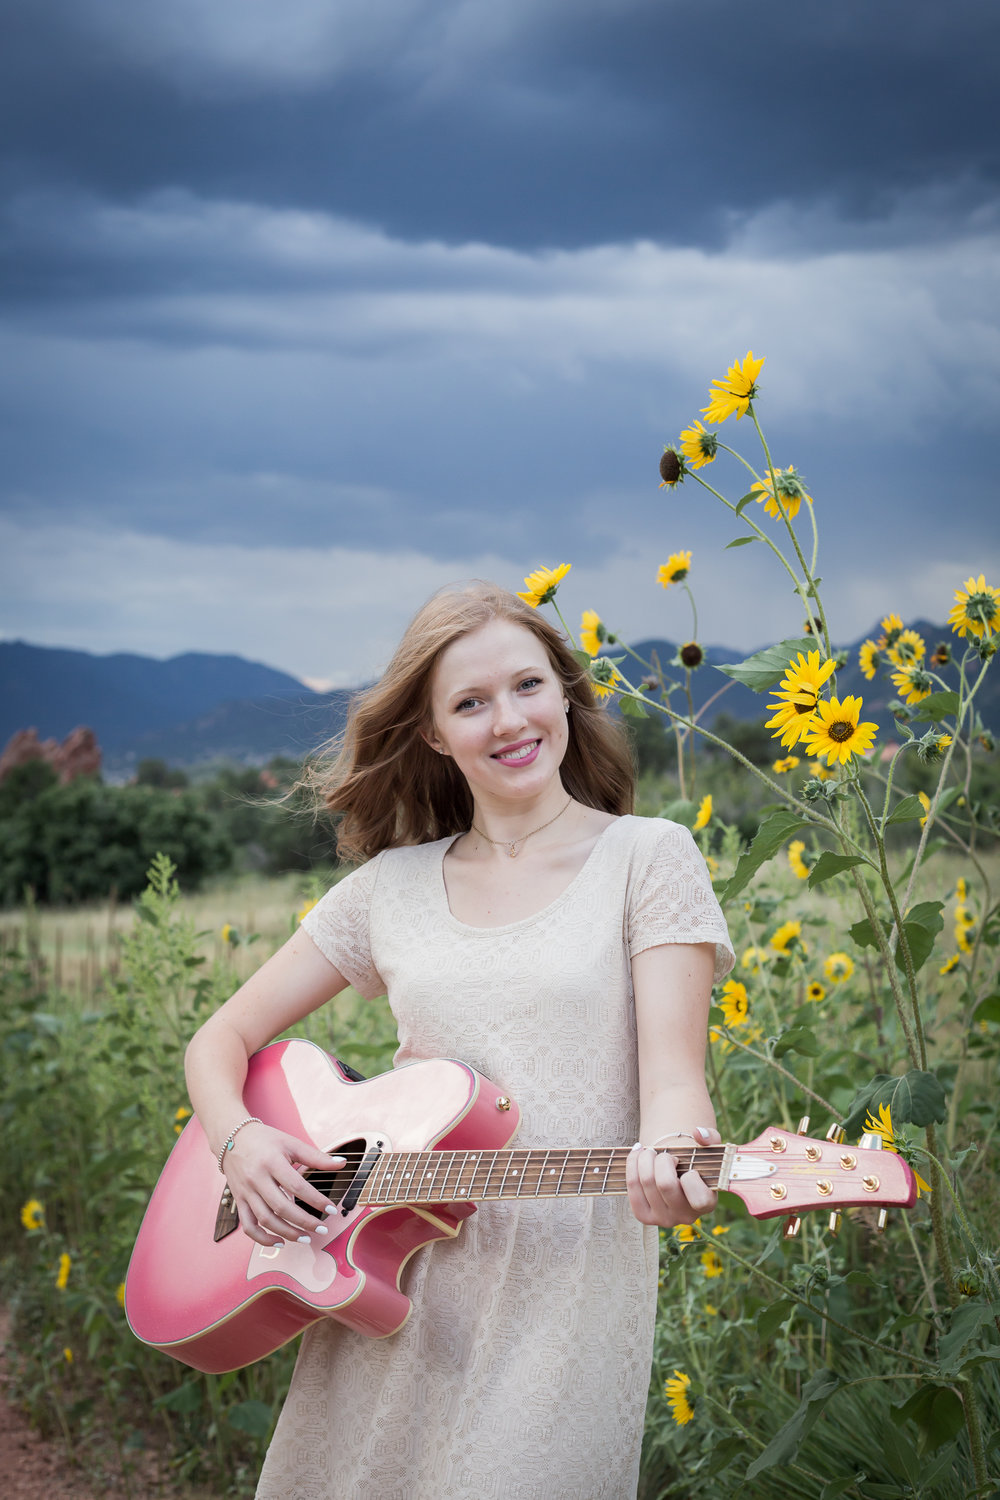 Colorado Springs Garden of the Gods Park Senior Portrait Session | Stacy Carosa Photography | Colorado Springs High School Senior Portrait Photographer